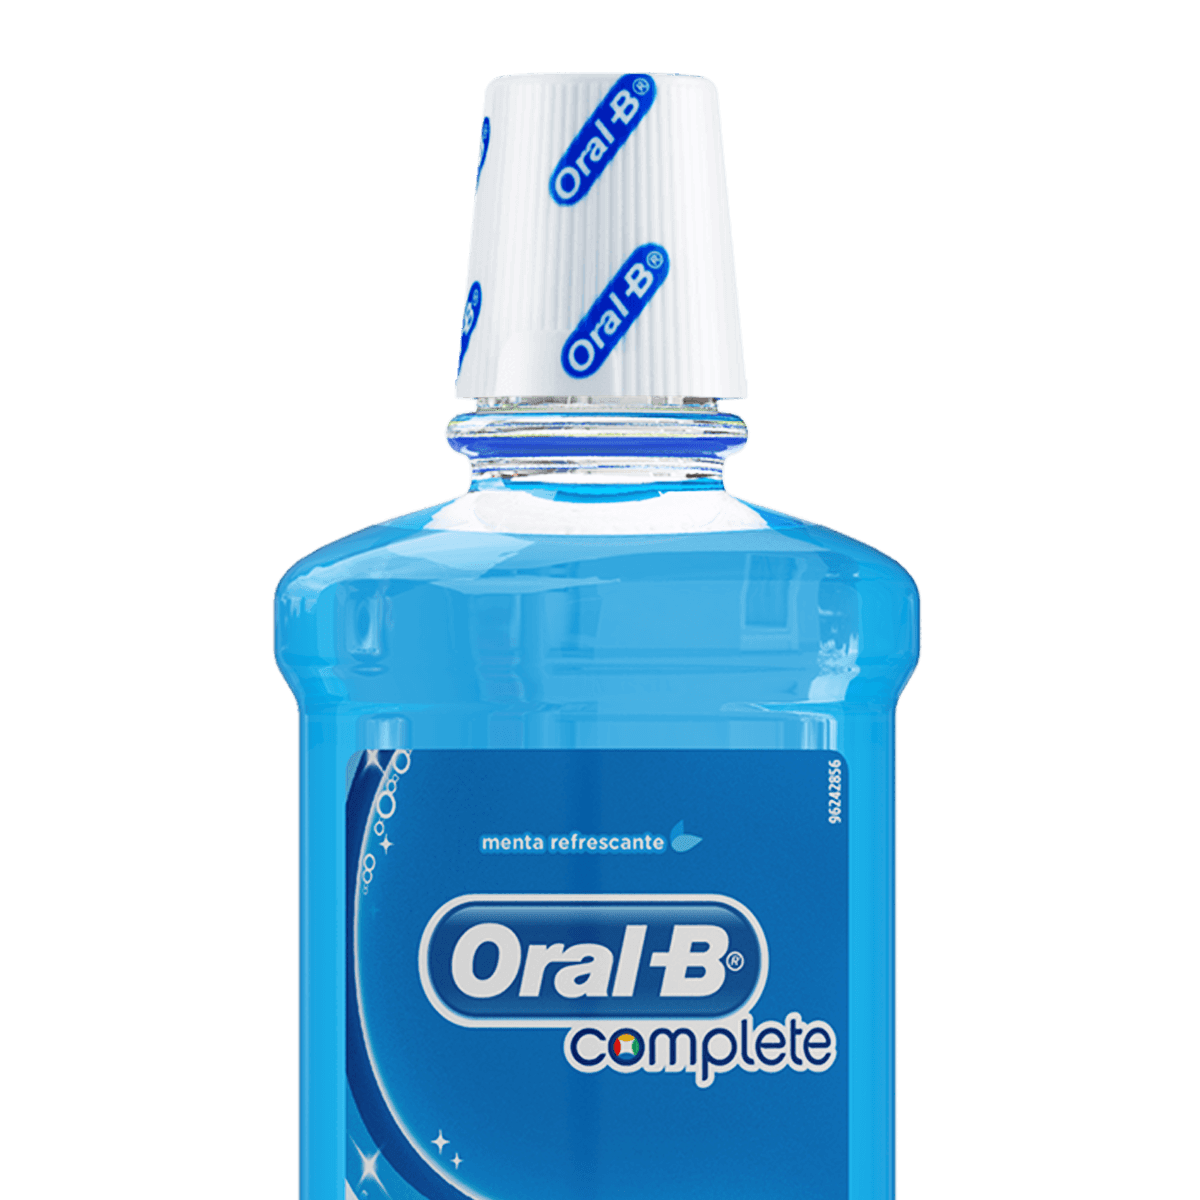 Enjuague Bucal Oral-B Complete Menta Refrescante